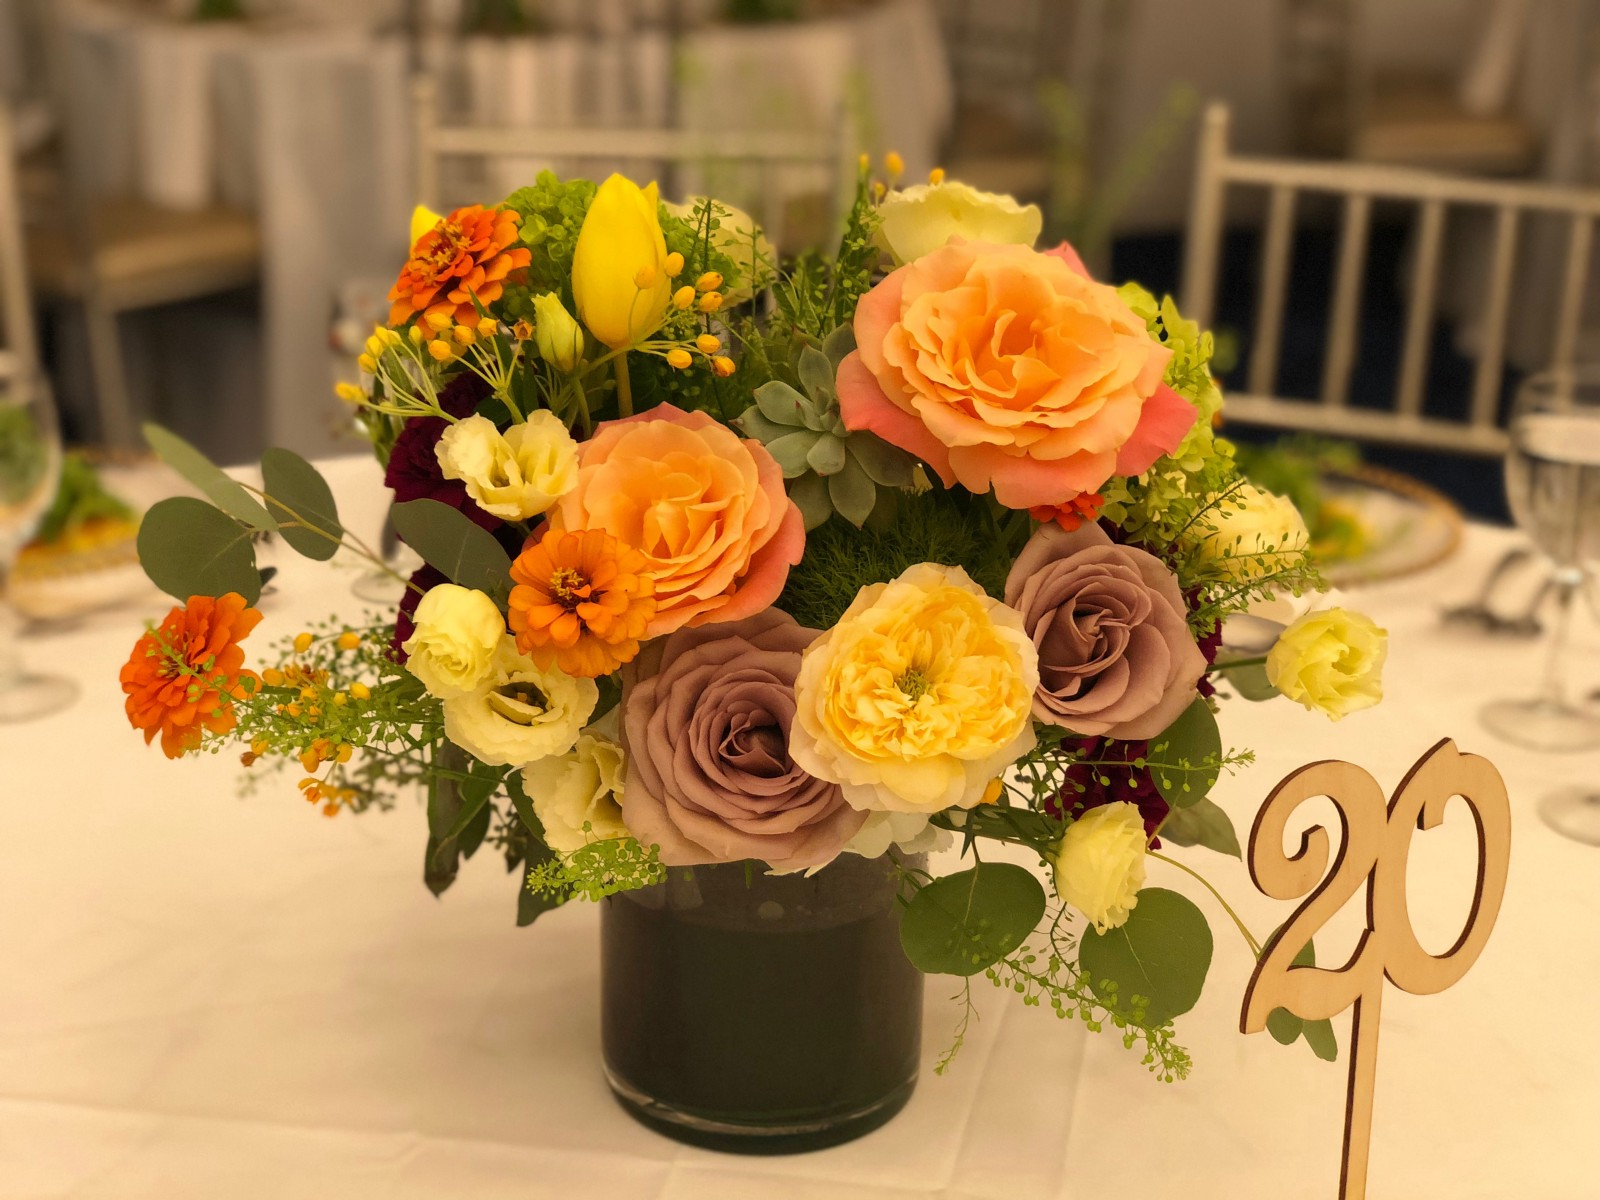 Mellisas bright bold wedding flowers wedding florist in new at fleurissimo nyc we specialize in providing affordable wedding flower packages in new york city we want you to enjoy the stunning style of our flower izmirmasajfo